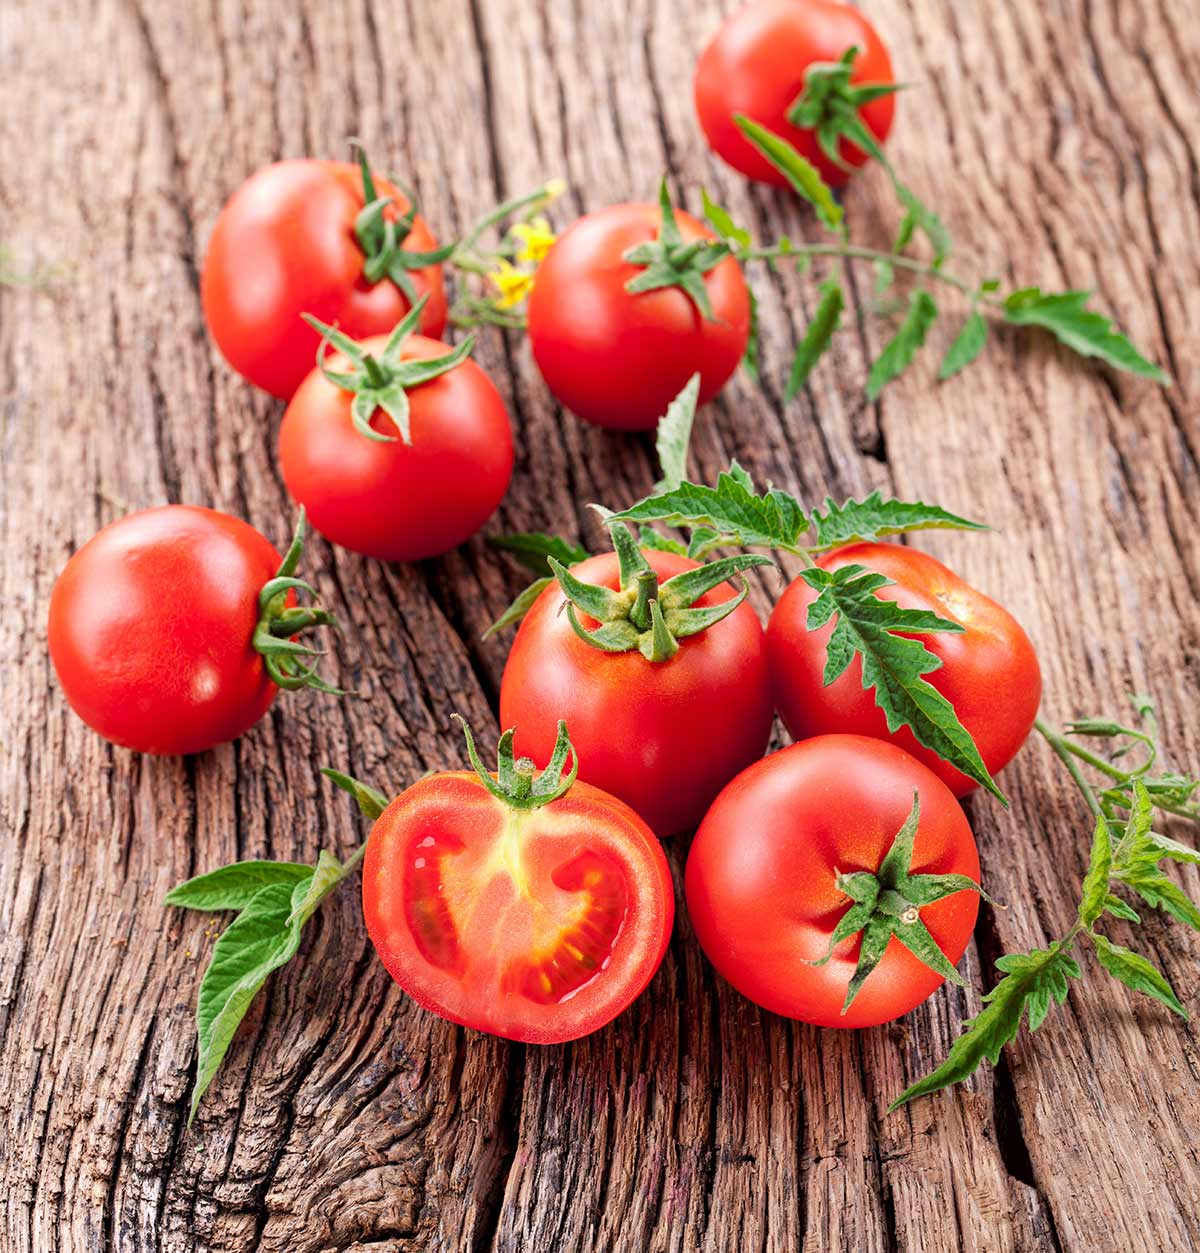 Organic-Tomatoes-for-Juice.jpg